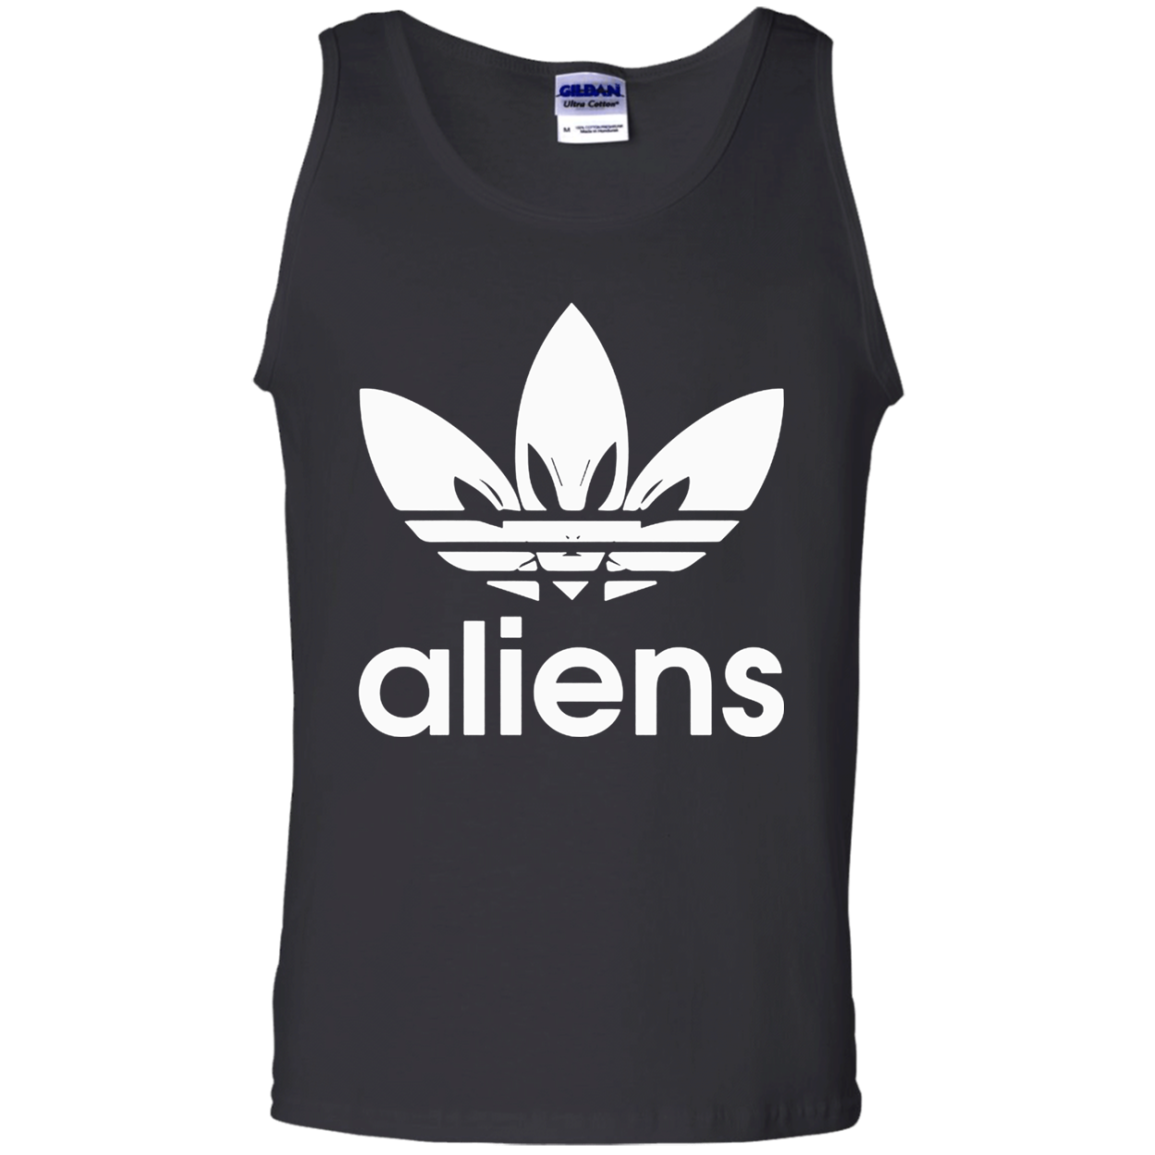 Aliens Adidas Shirt Cotton Tank Top Men